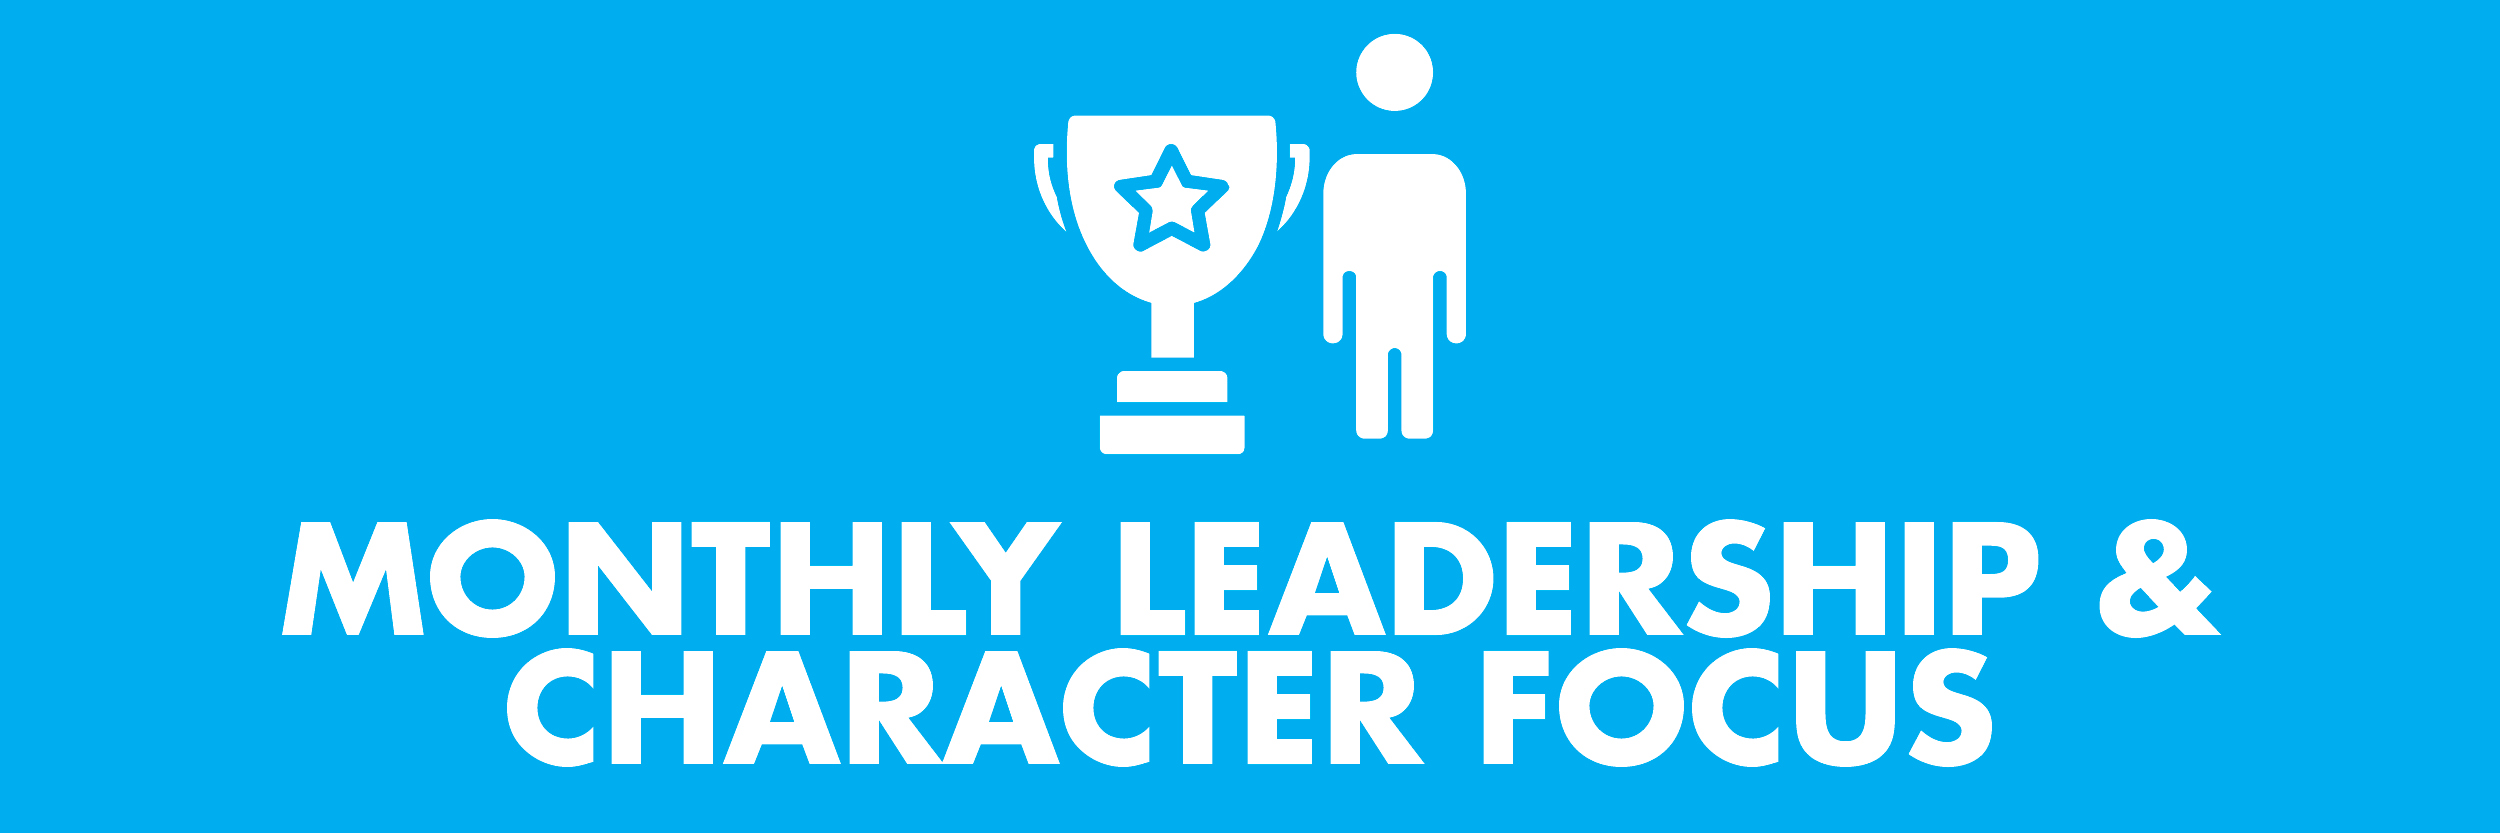 Monthly Leadership Character & Focus